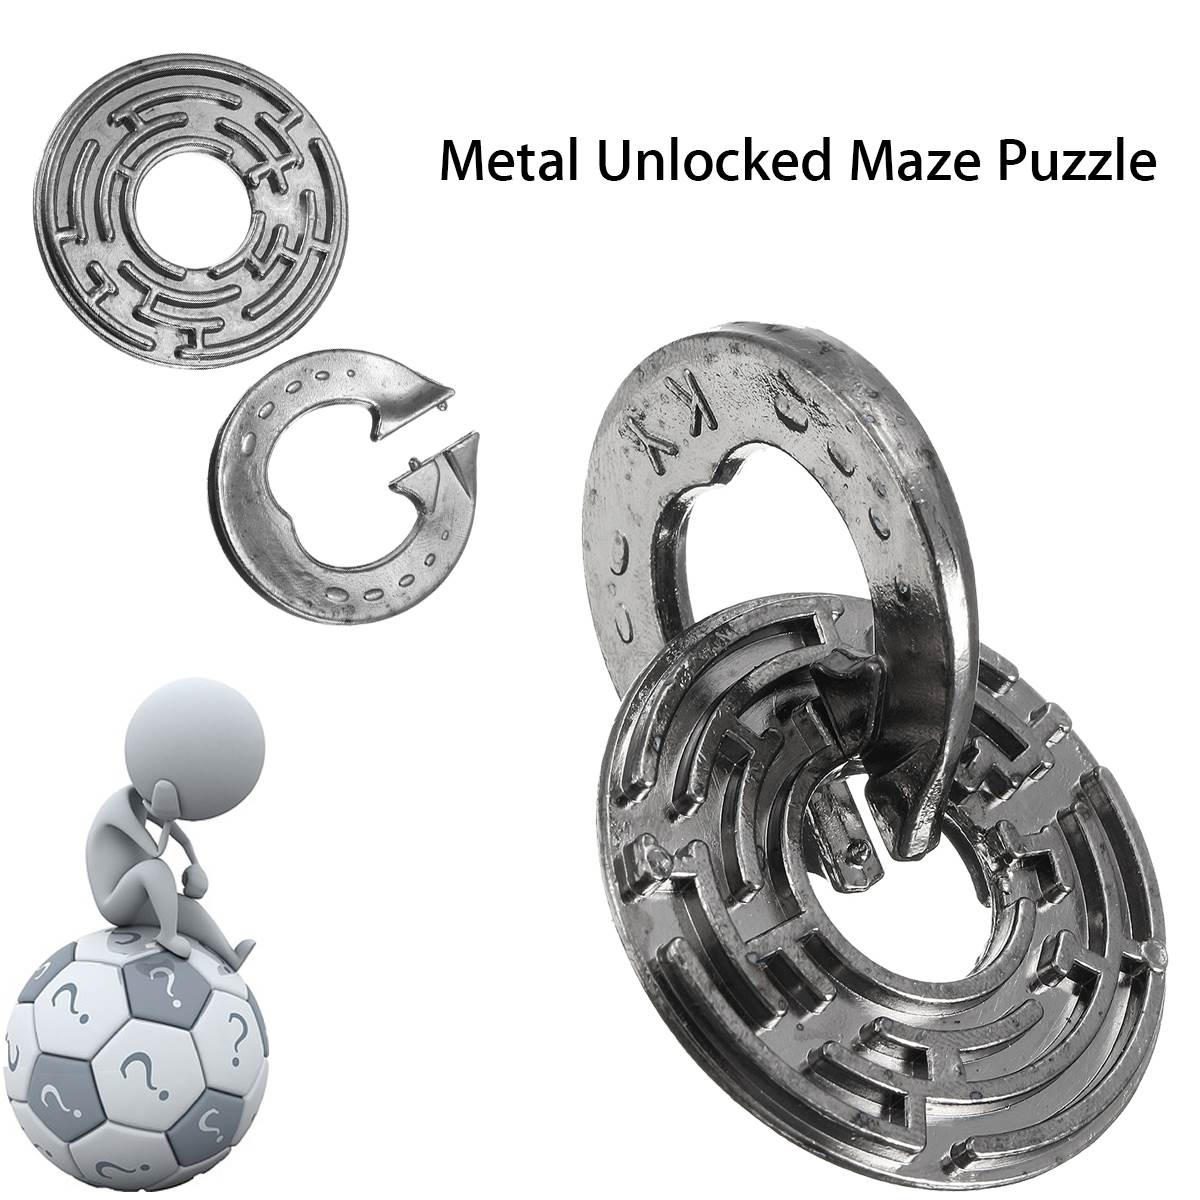 Funny Metal Unlocked Maze Puzzle Labyrinth IQ Mind Brain Teaser Educational Toy Gift Puzzle Game Toy For Children Kids metal puzzle iq mind brain game teaser square educational toy gift for children adult kid game toy